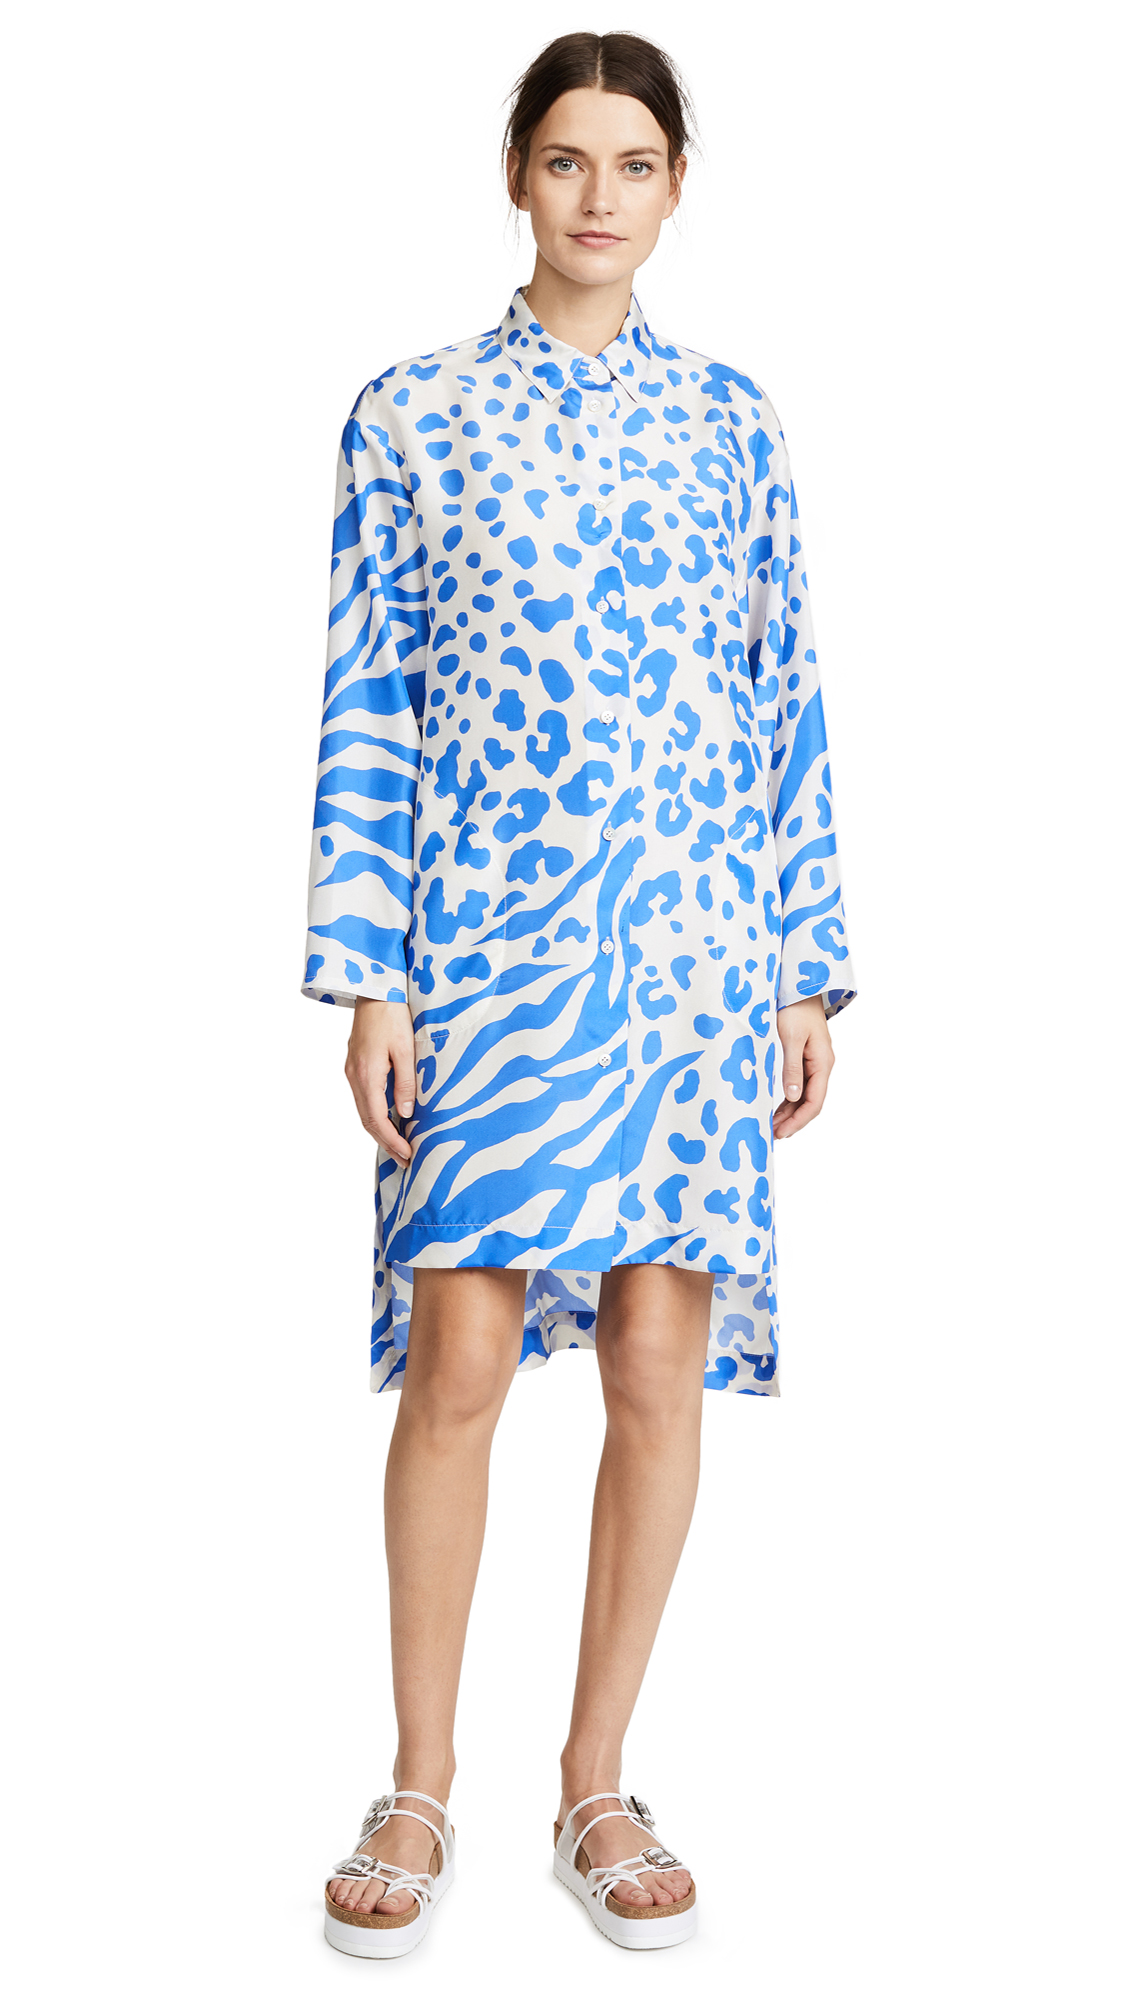 Acne Studios Jenia Silk Dress - Clay/Blue